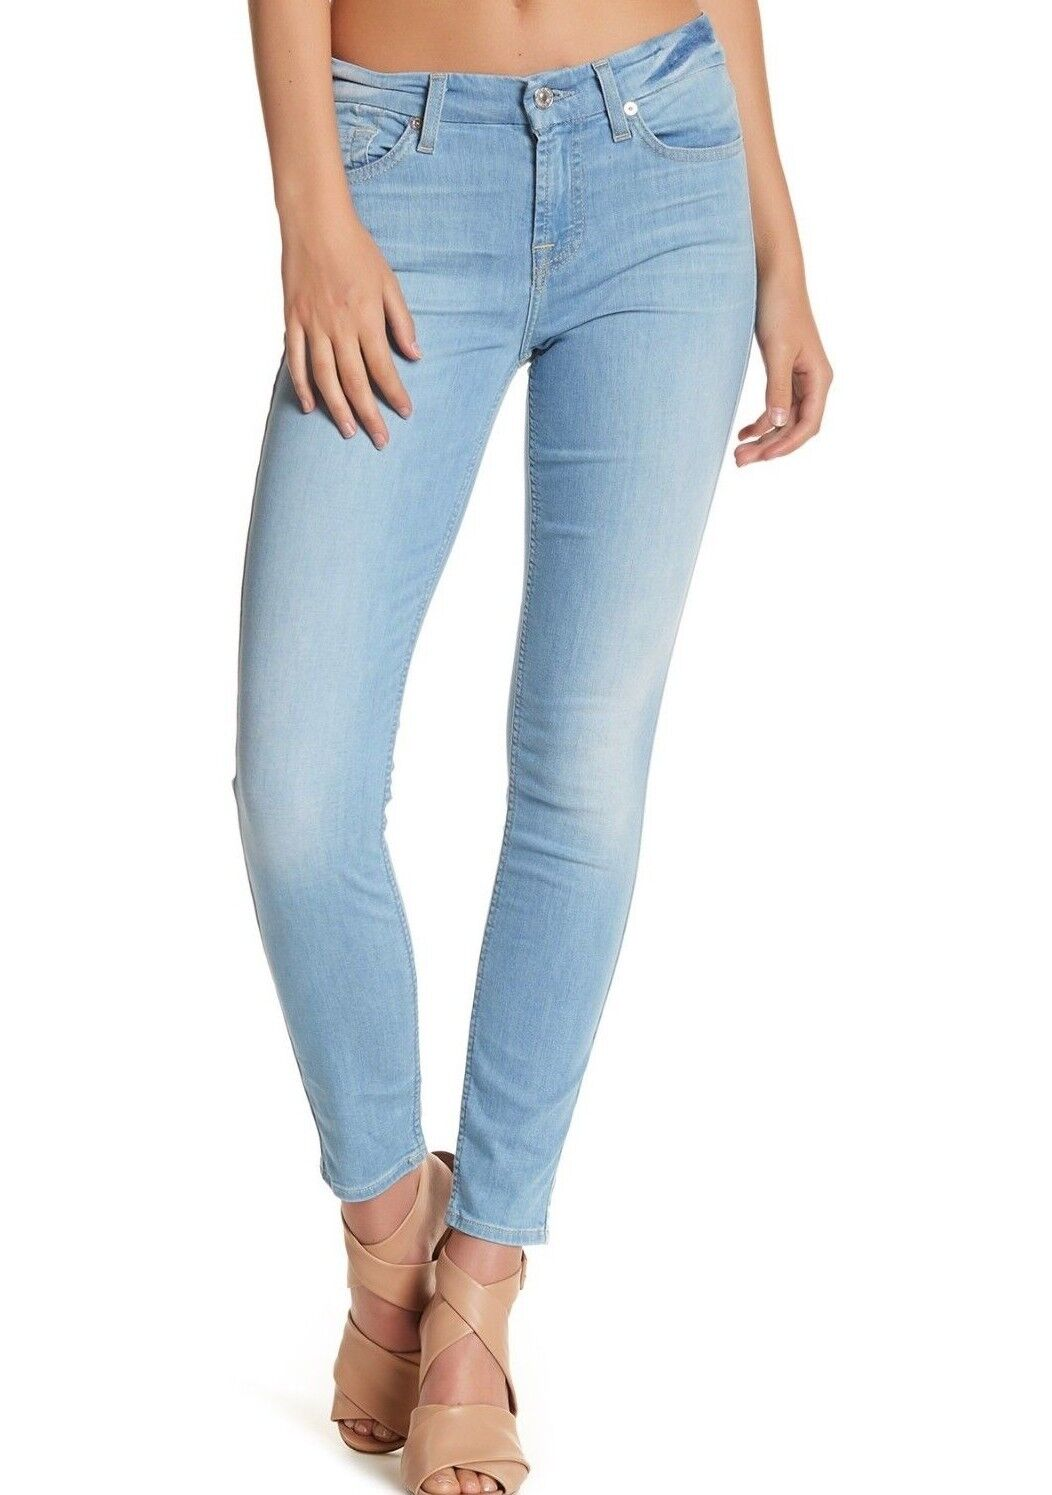 NWT 7 FOR ALL MANKIND Sz28 THE ANKLE SKINNY HI-WAIST JEANS CLOUD blueE FEATHE 199